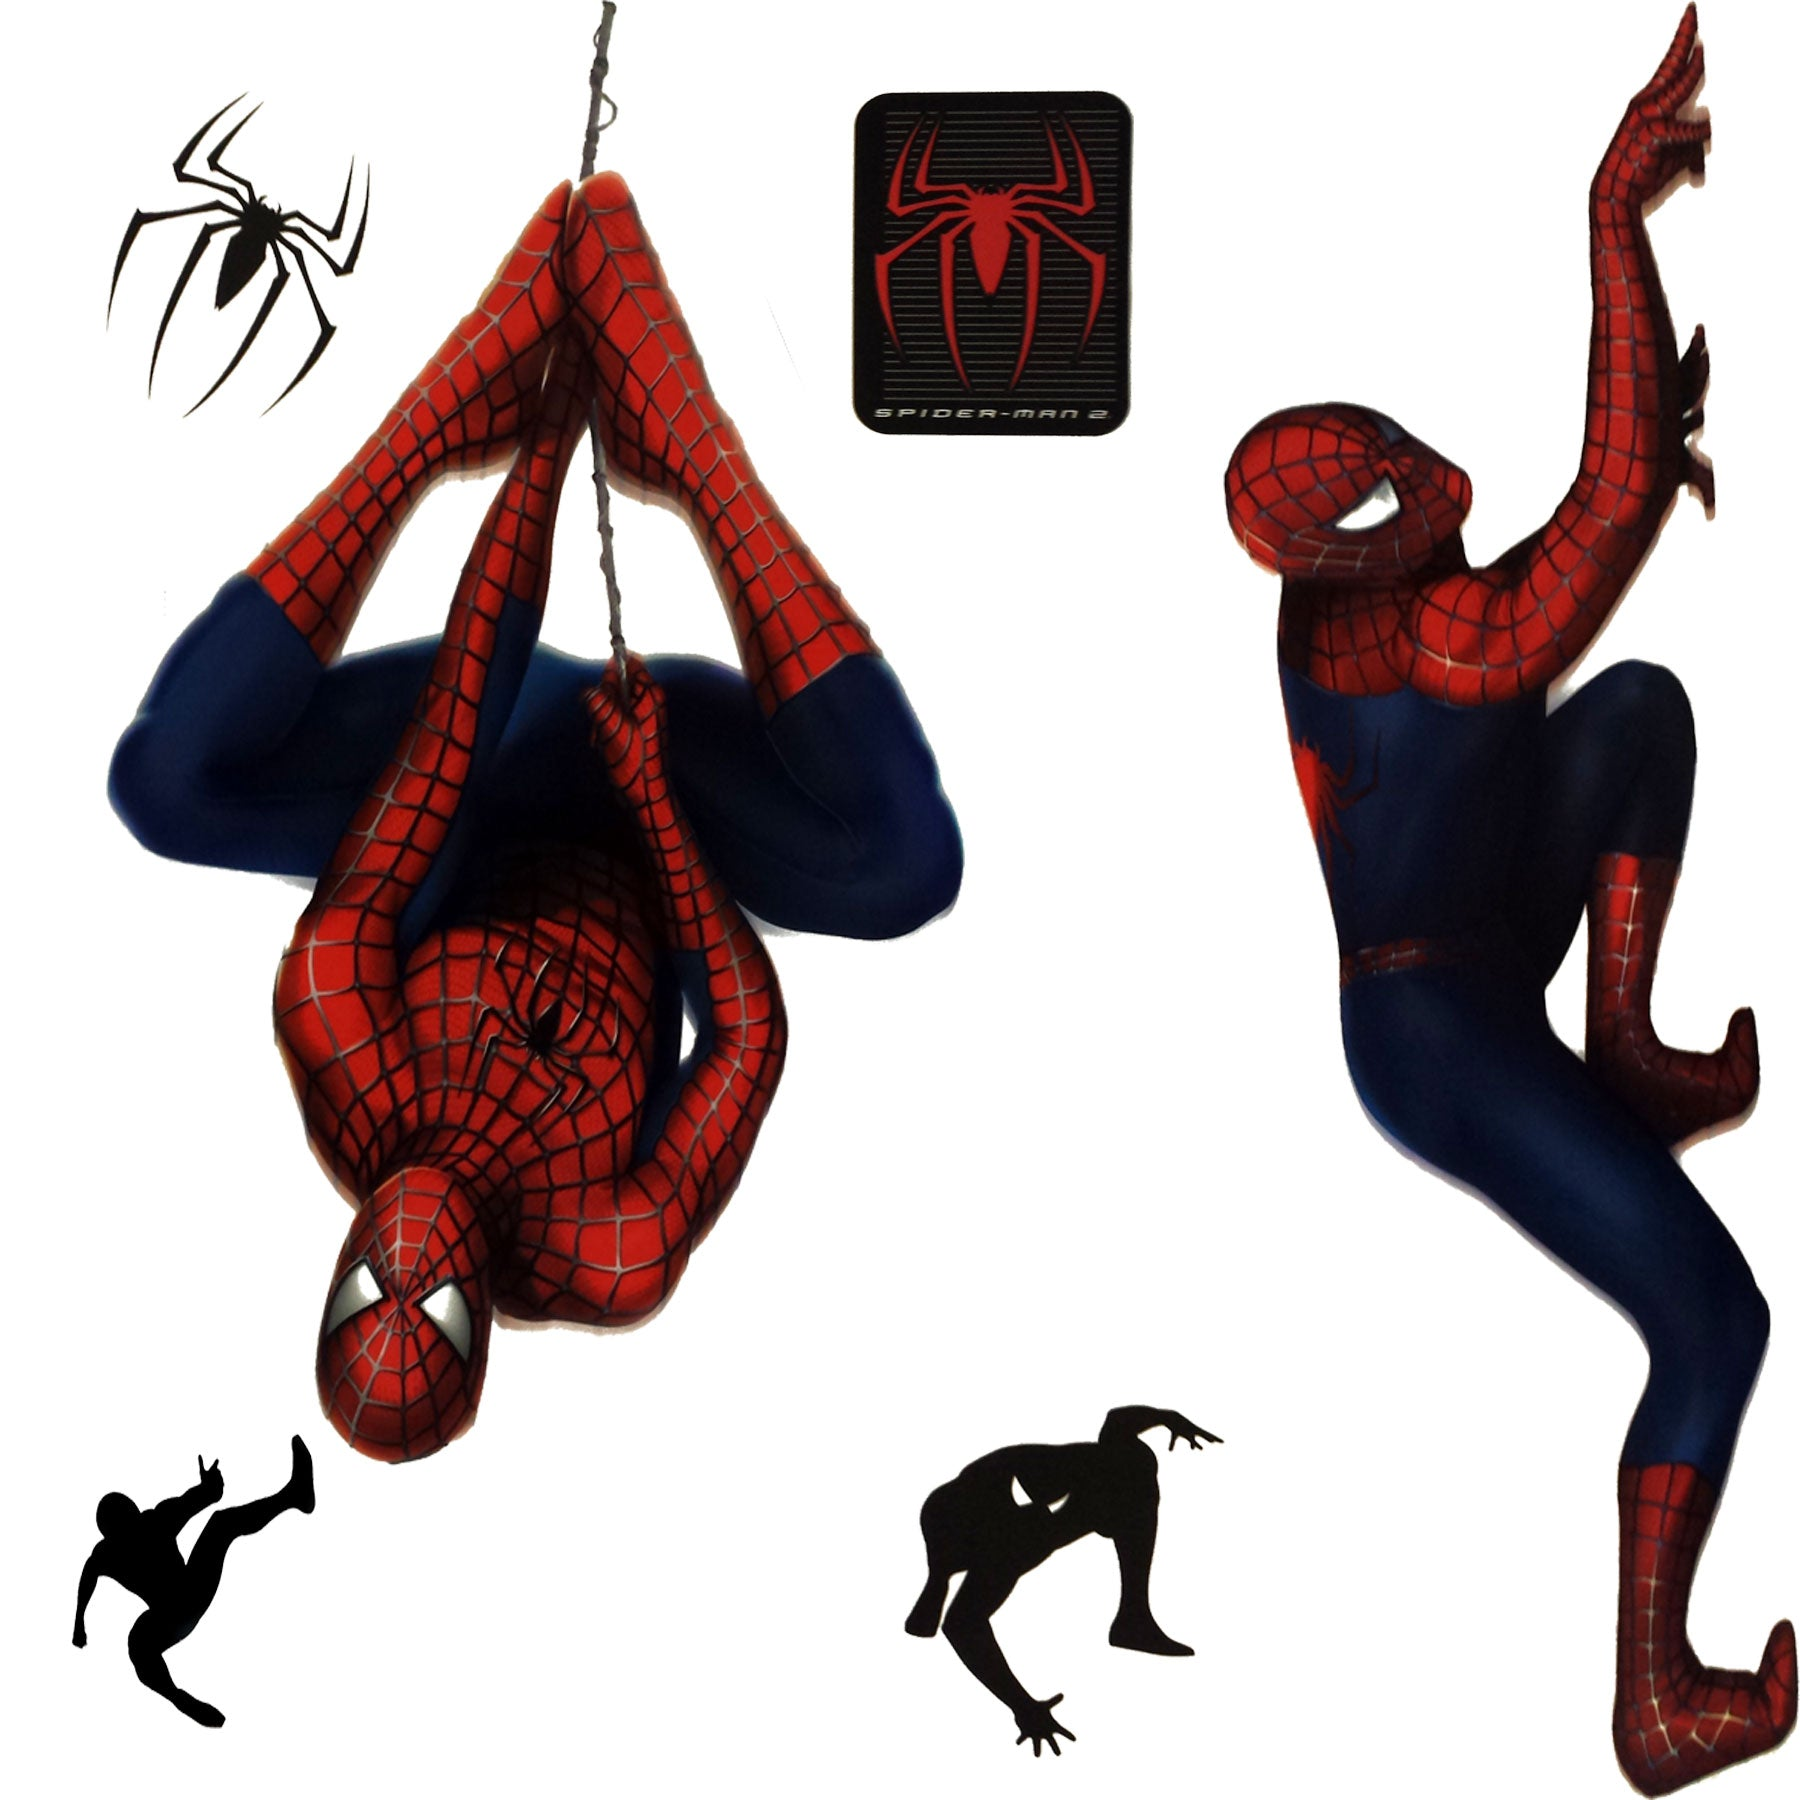 Marvel spiderman 2 stickers superhero self stick decals obedding marvel spider man 2 wall stickers amipublicfo Image collections